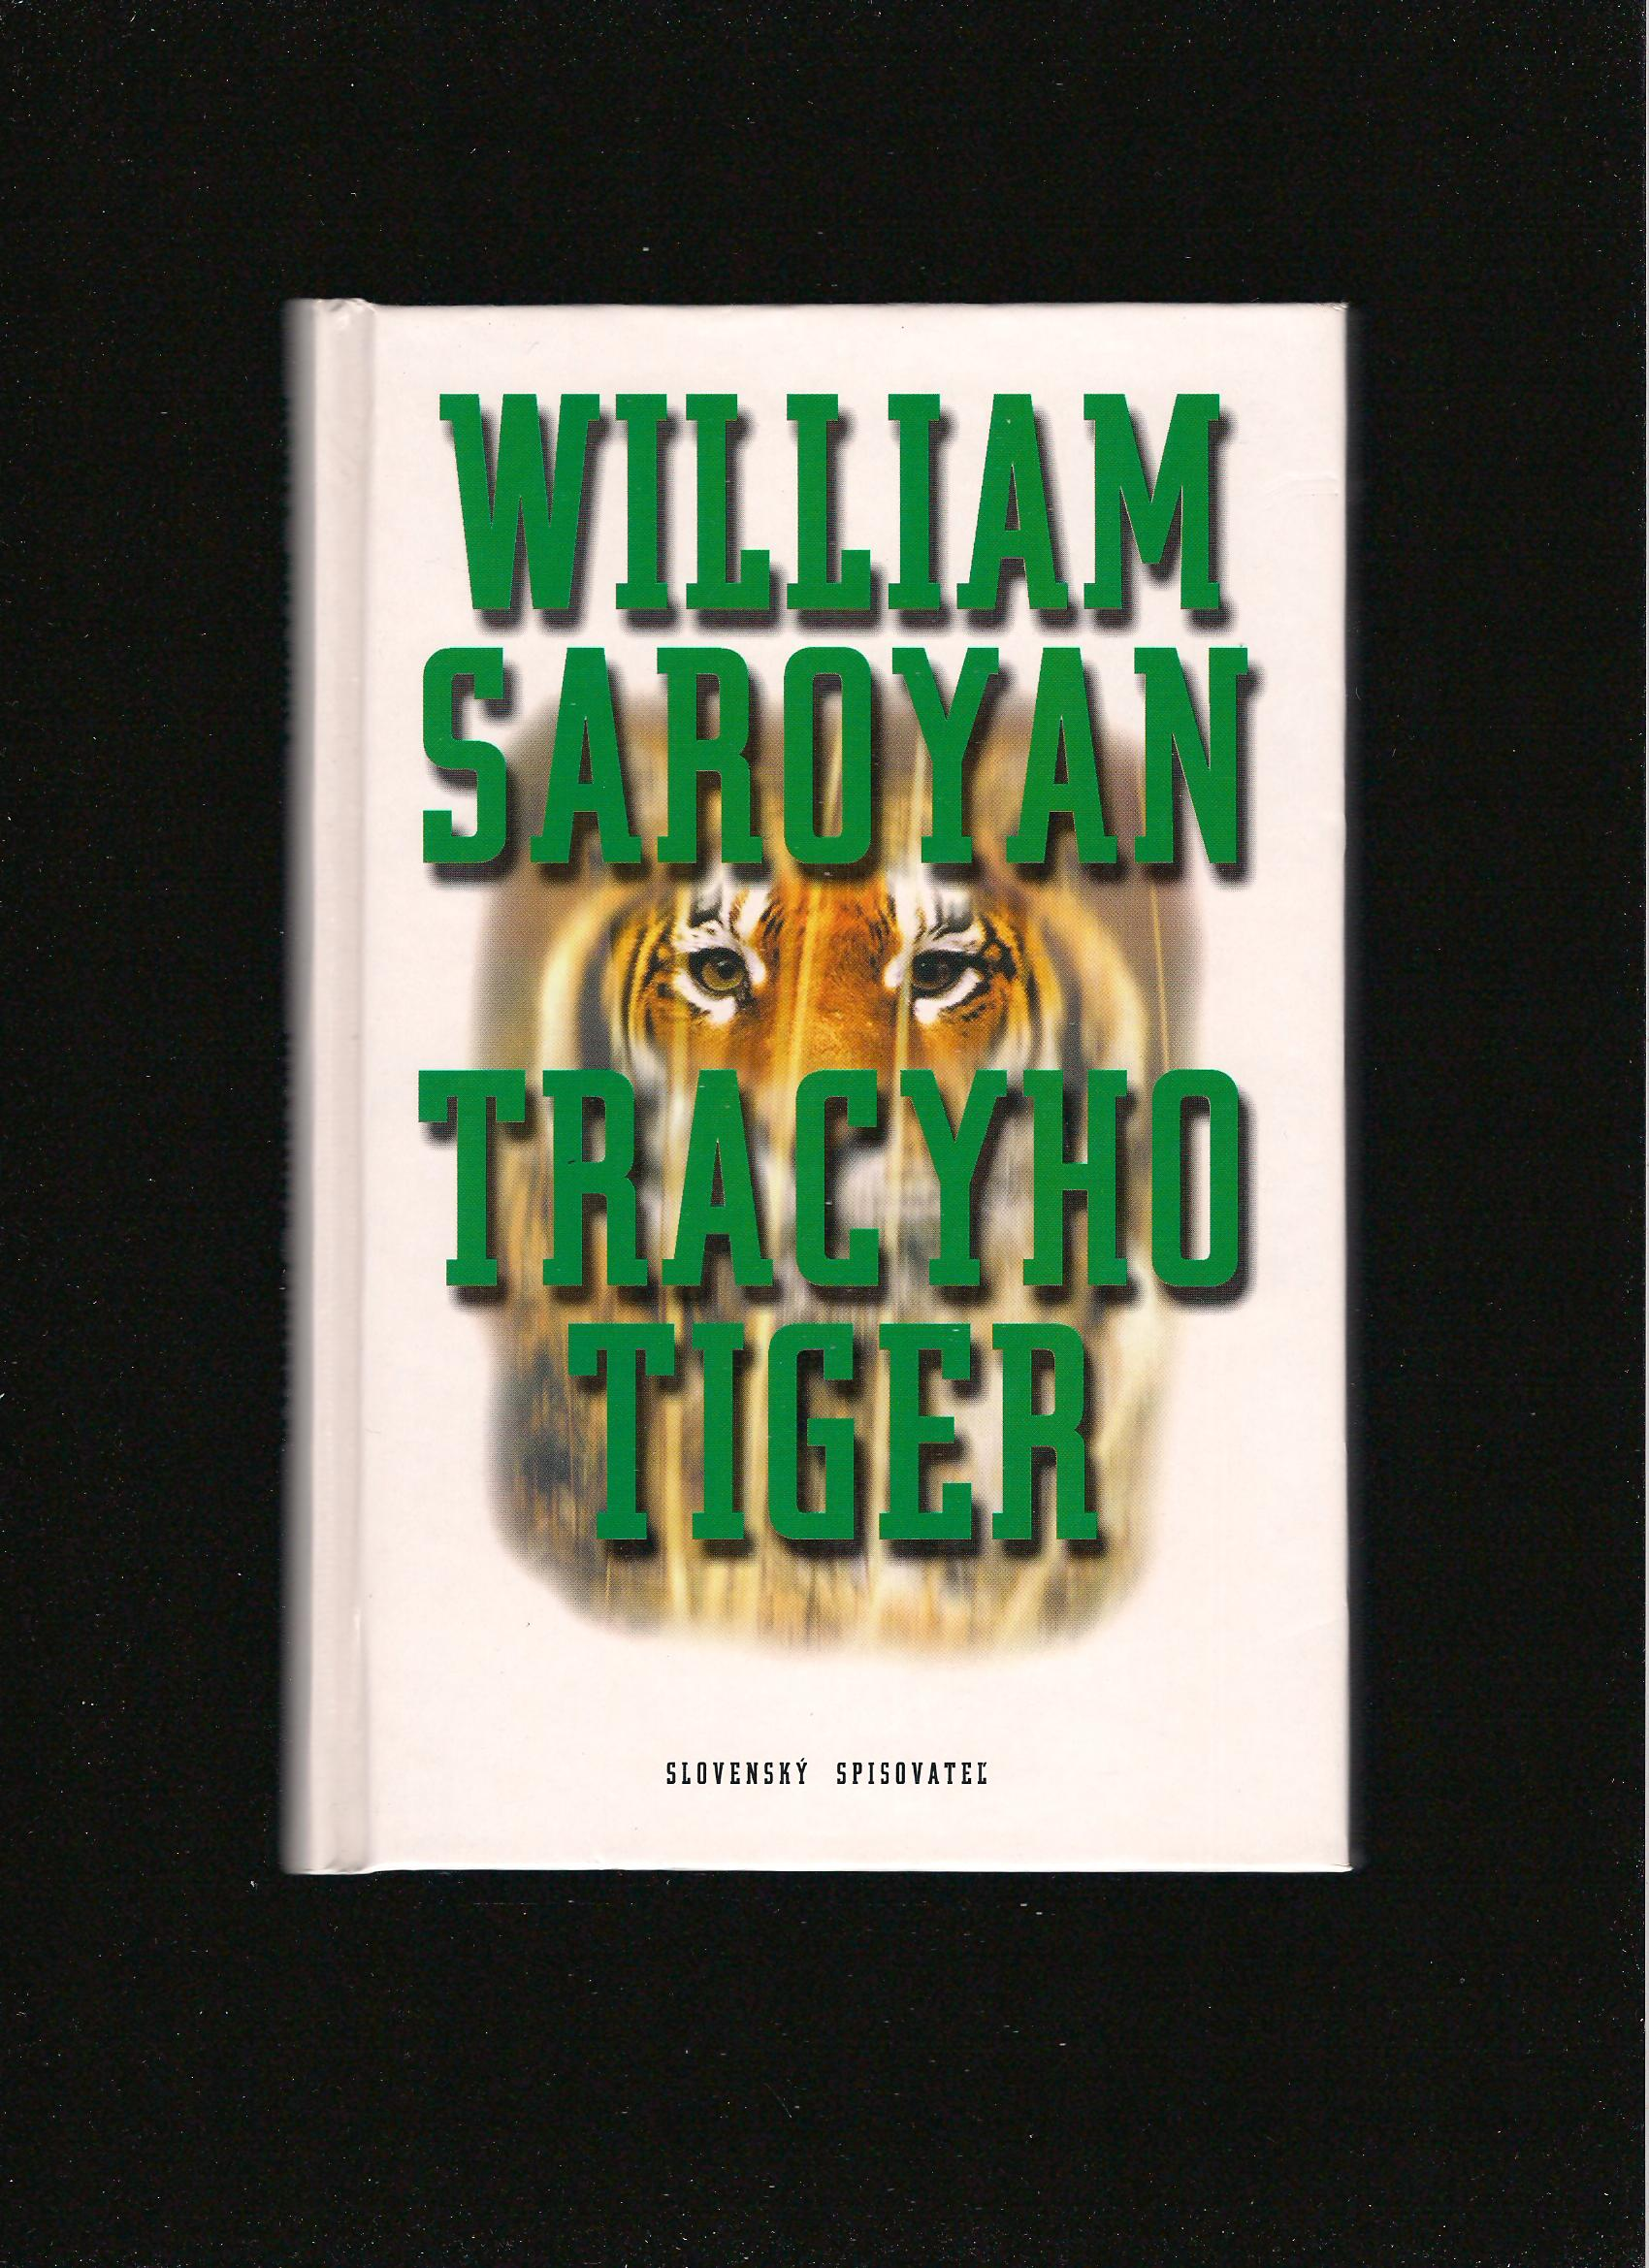 William Saroyan: Tracyho tiger /2002/